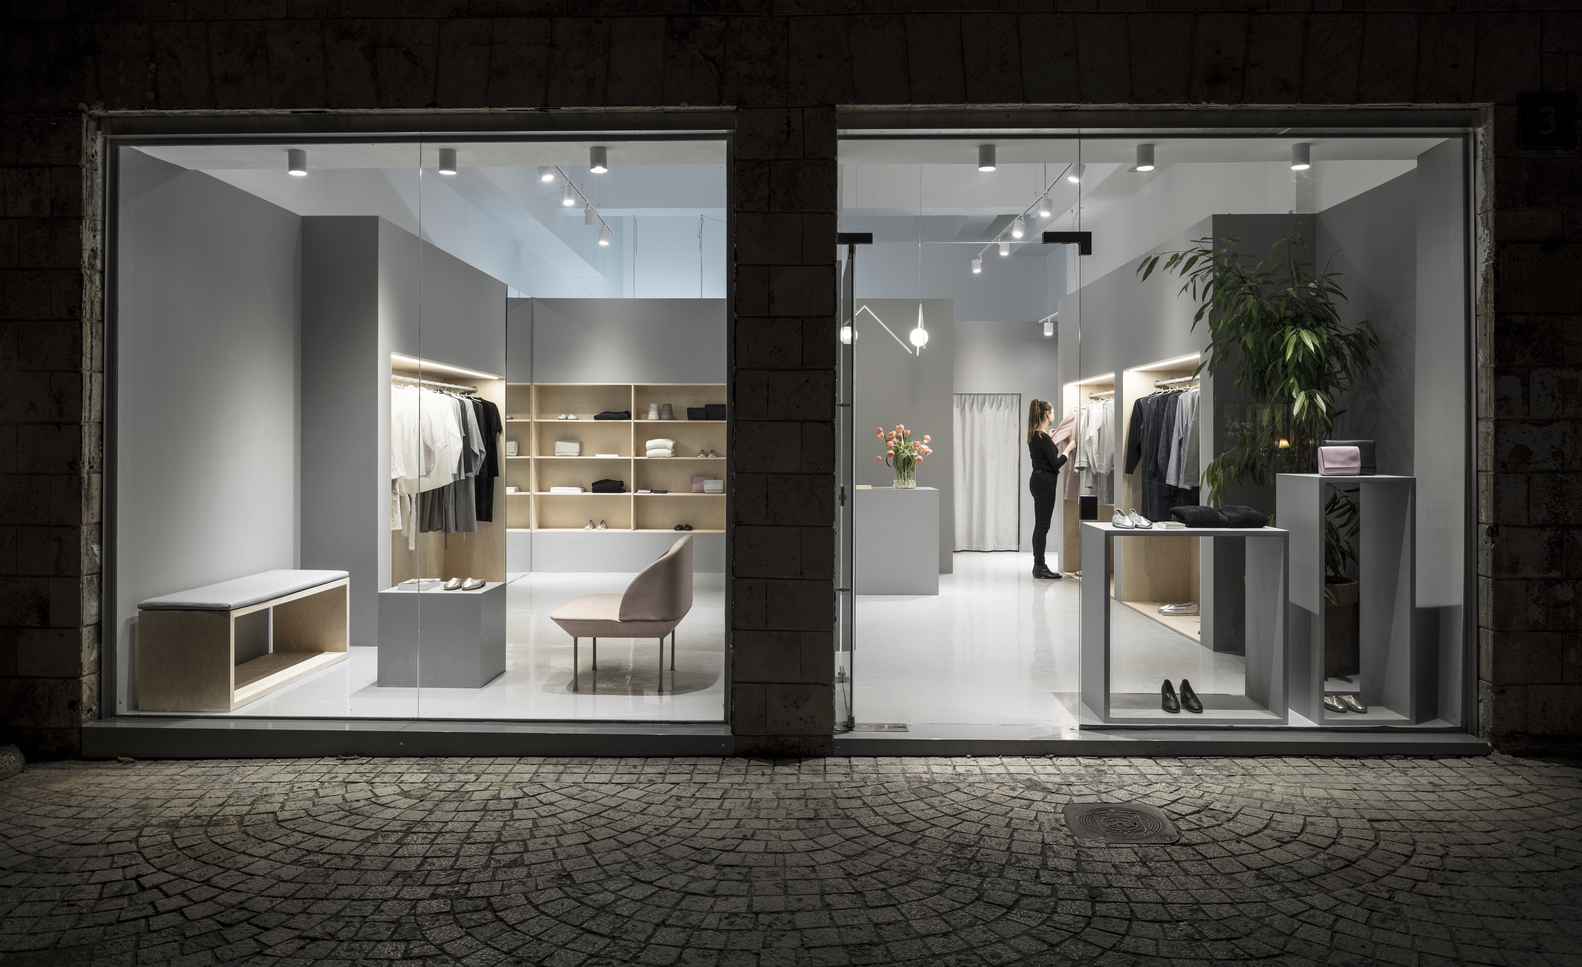 Retail Lighting: Five Best Practices